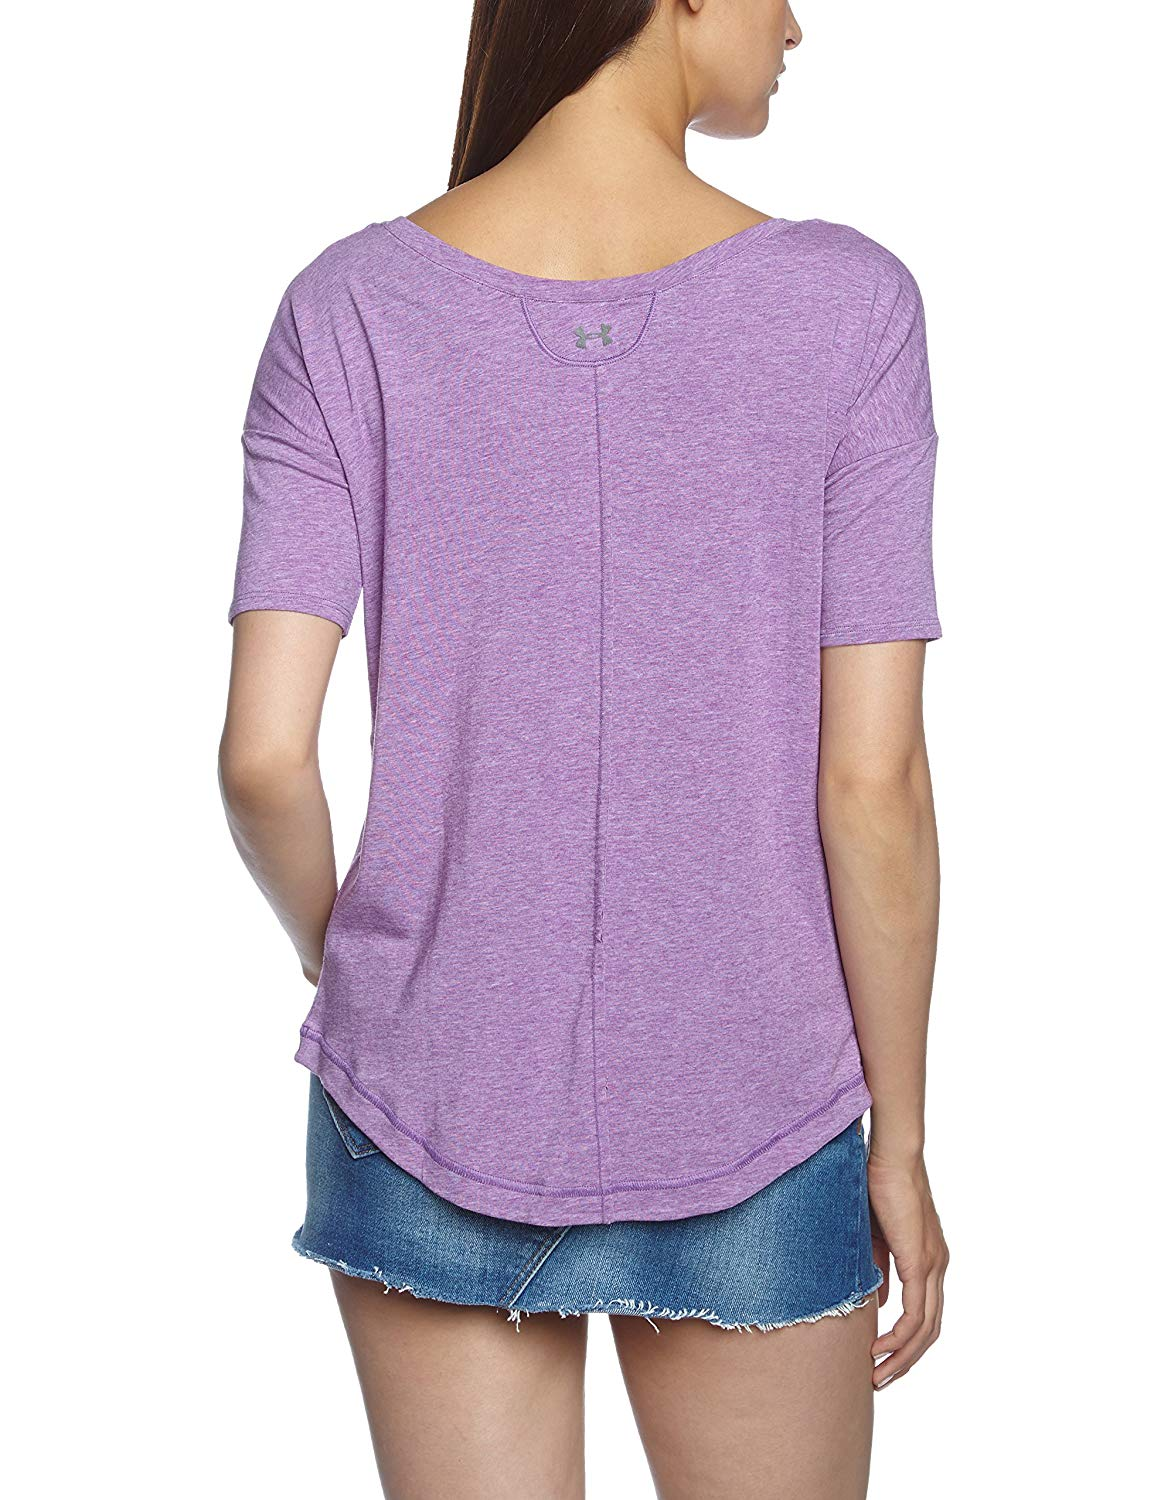 Under Armour Flow Ladies Short Sleeve T Shirt